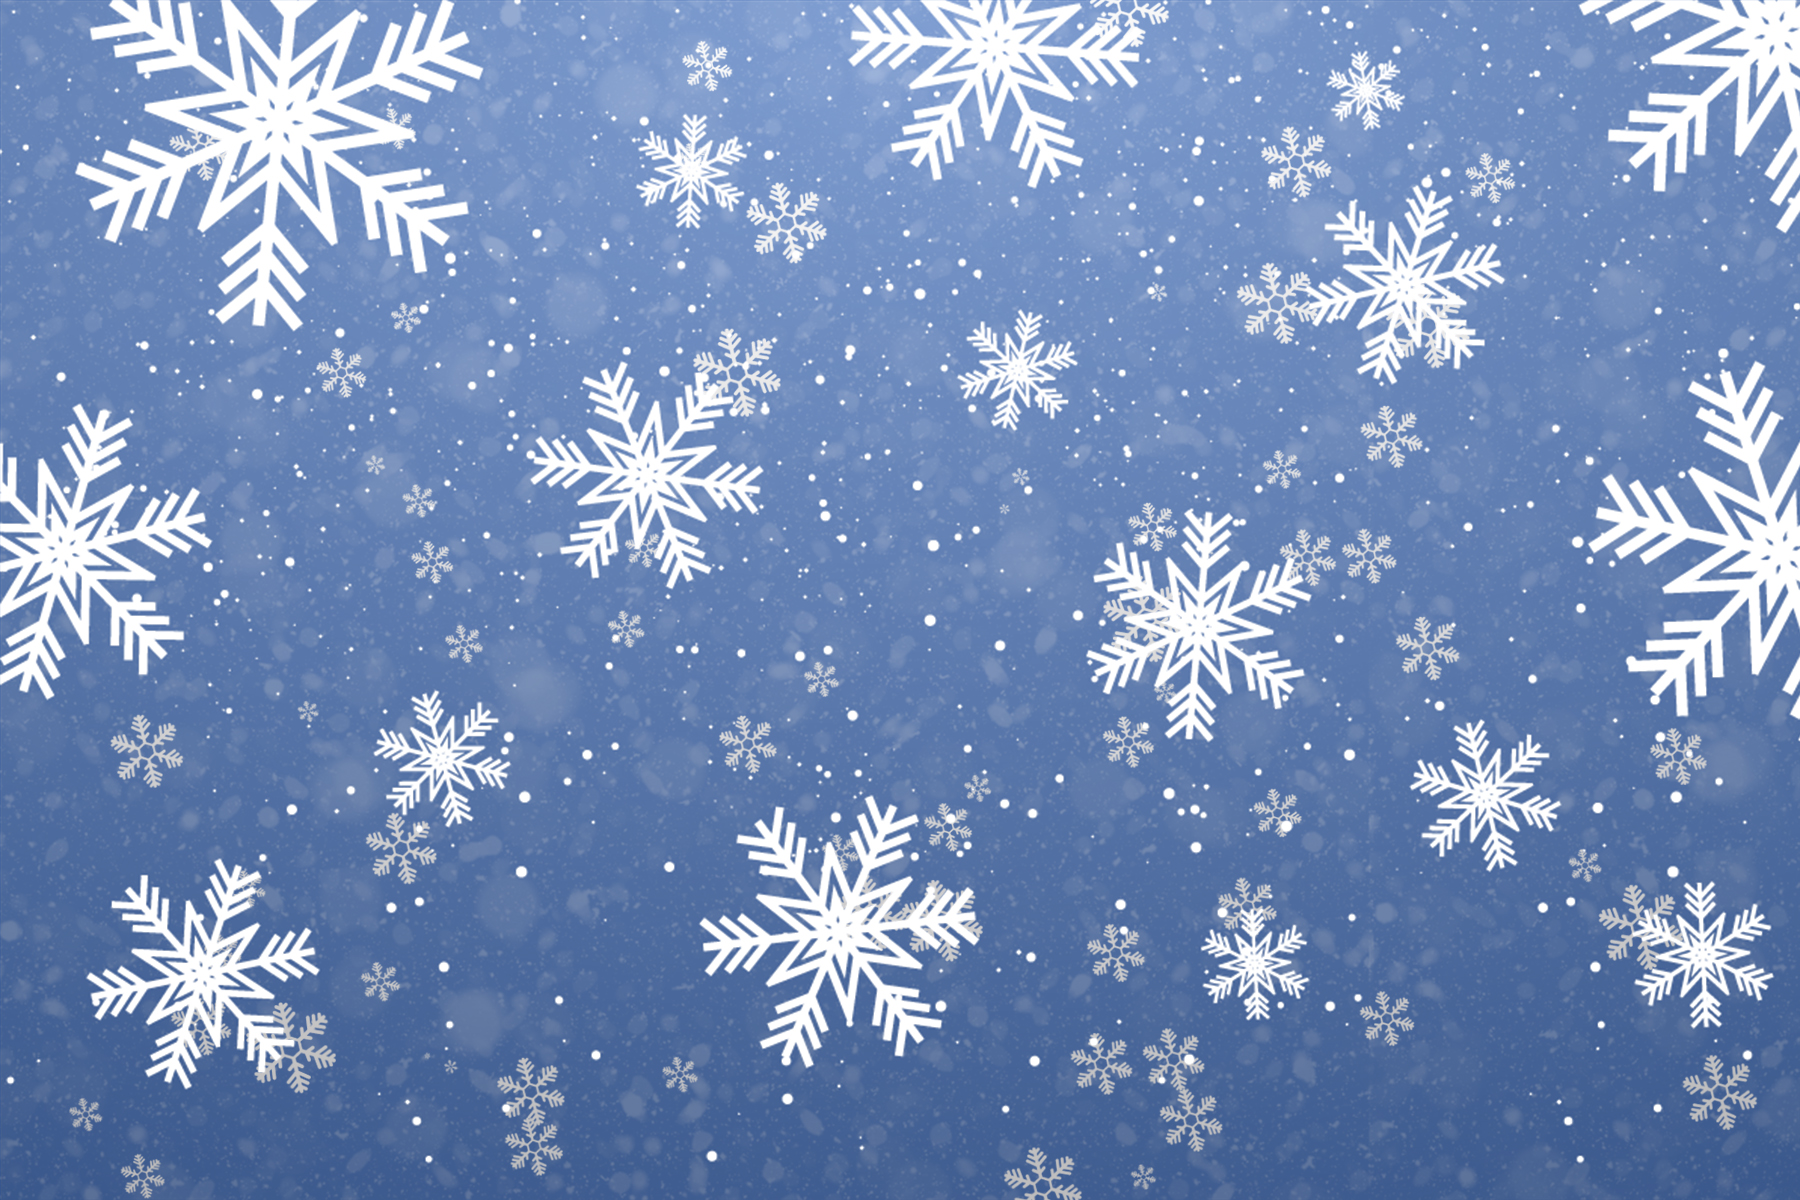 FREE 23+ Snowflakes Wallpapers in PSD | Vector EPS |Real Snowflakes Background